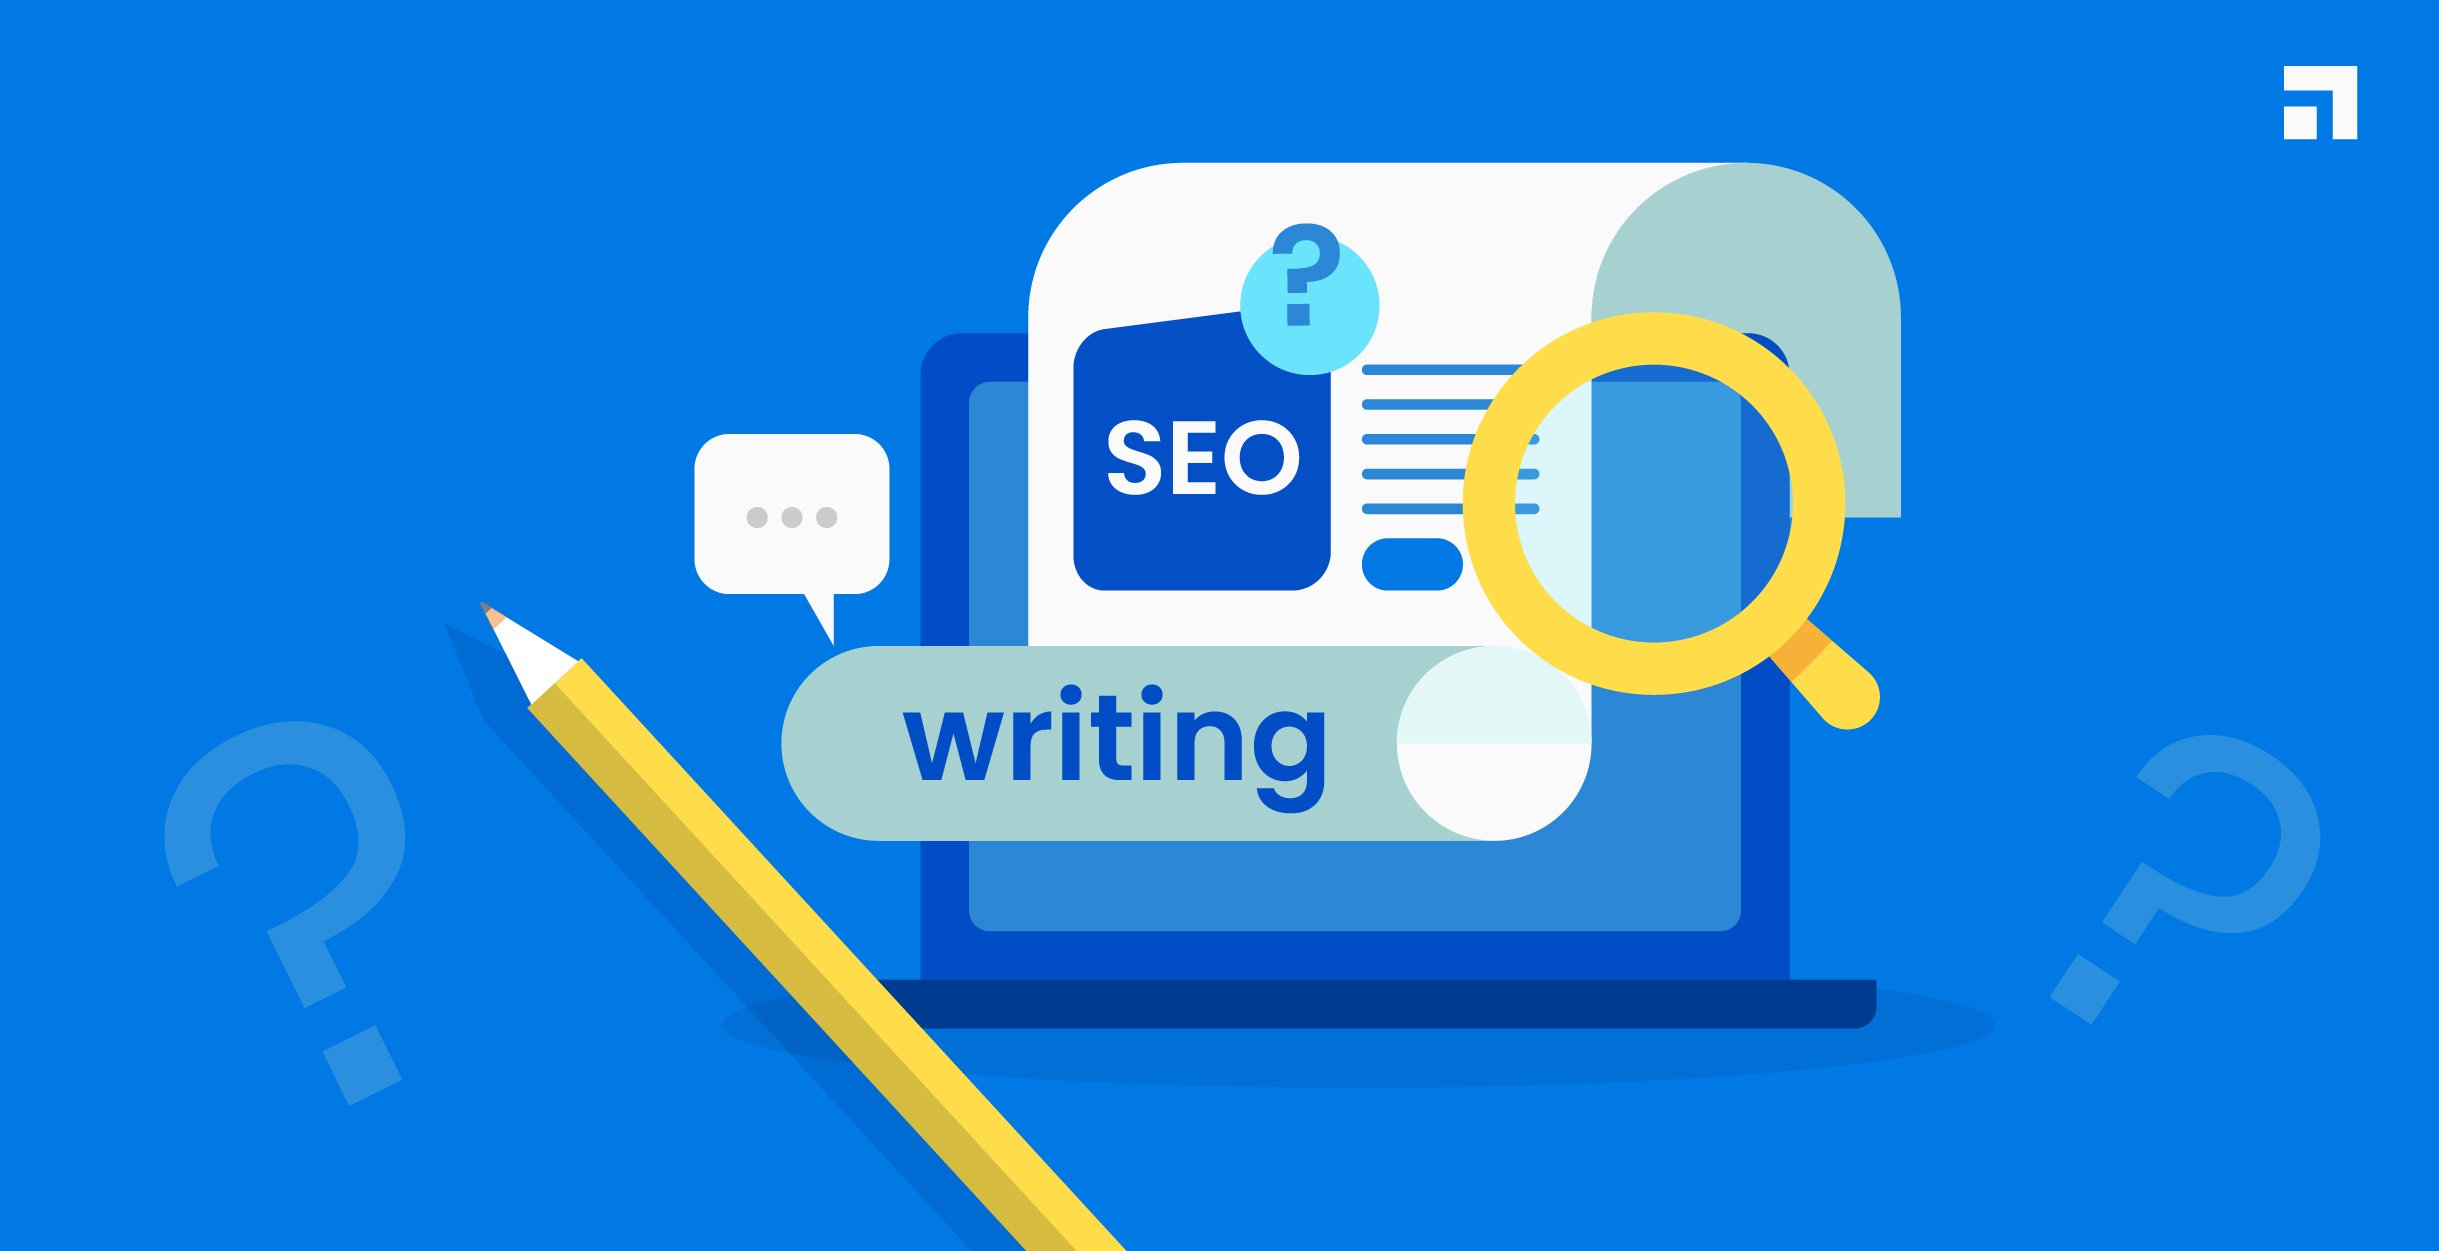 What is SEO Writing: How to master the art of SEO content writing?